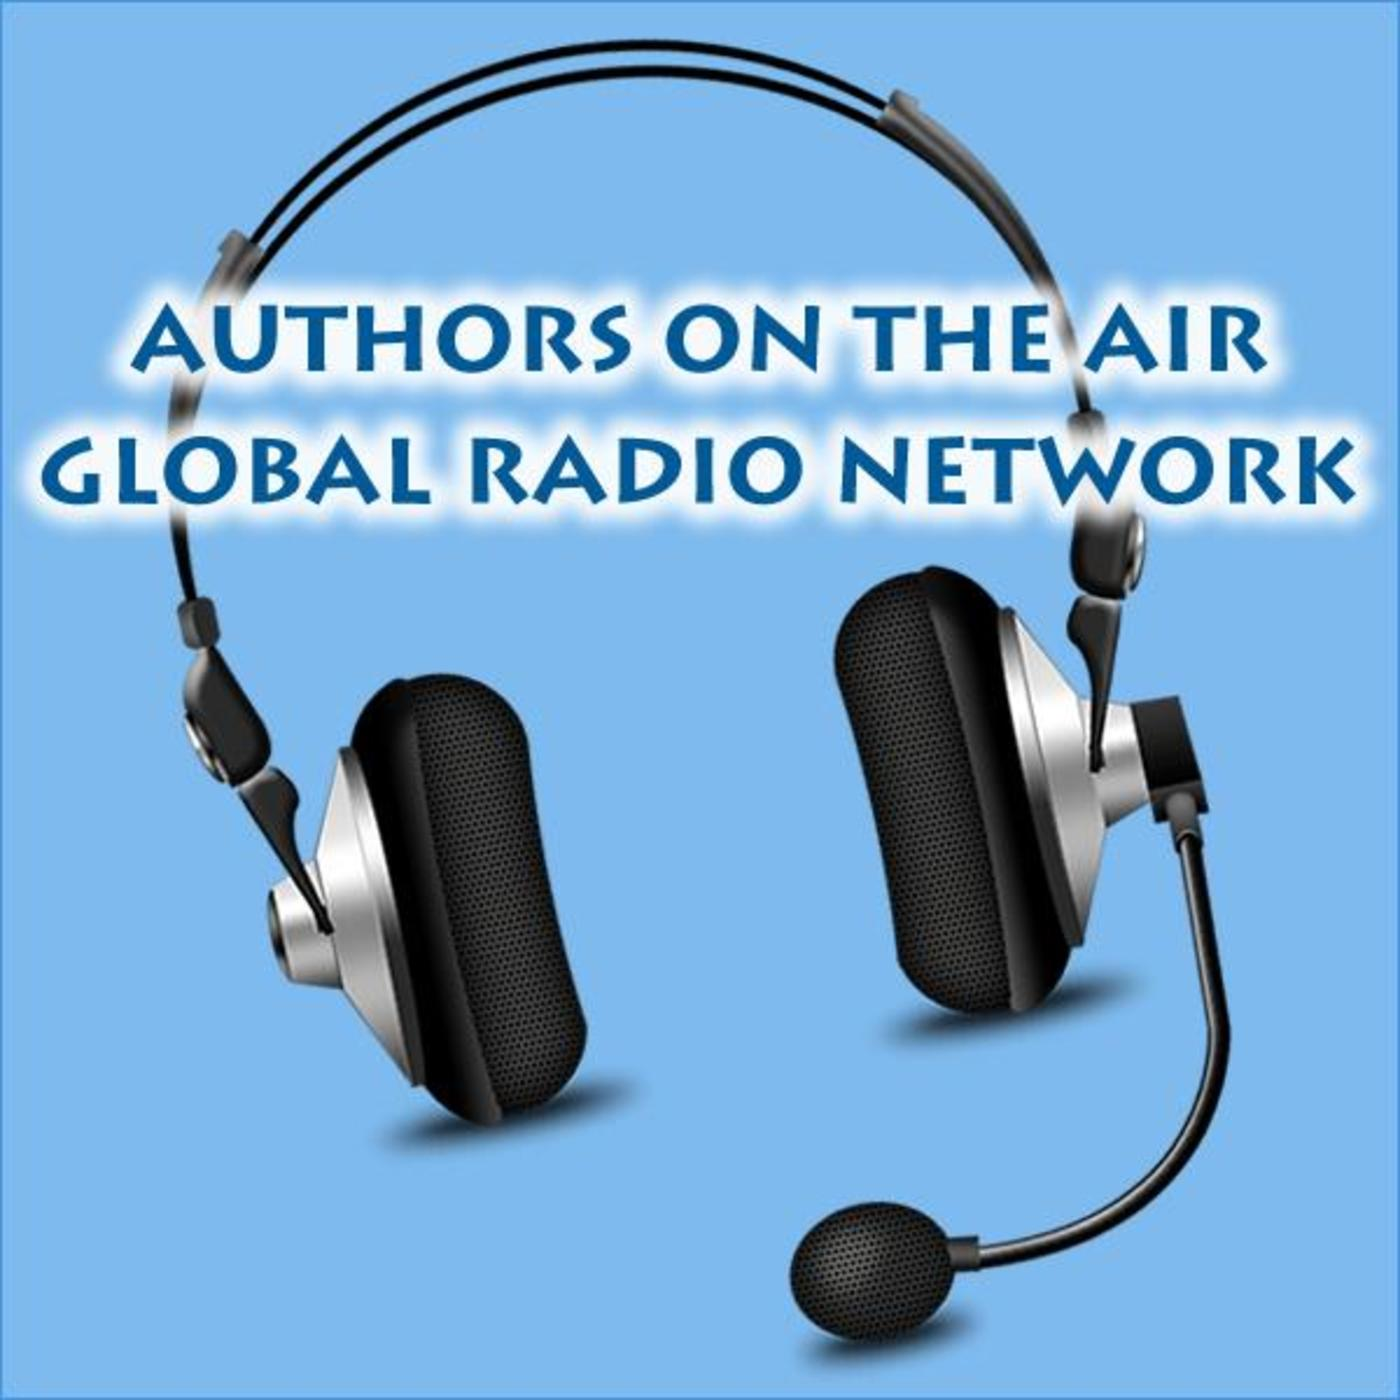 Authors on the Air Radio 2